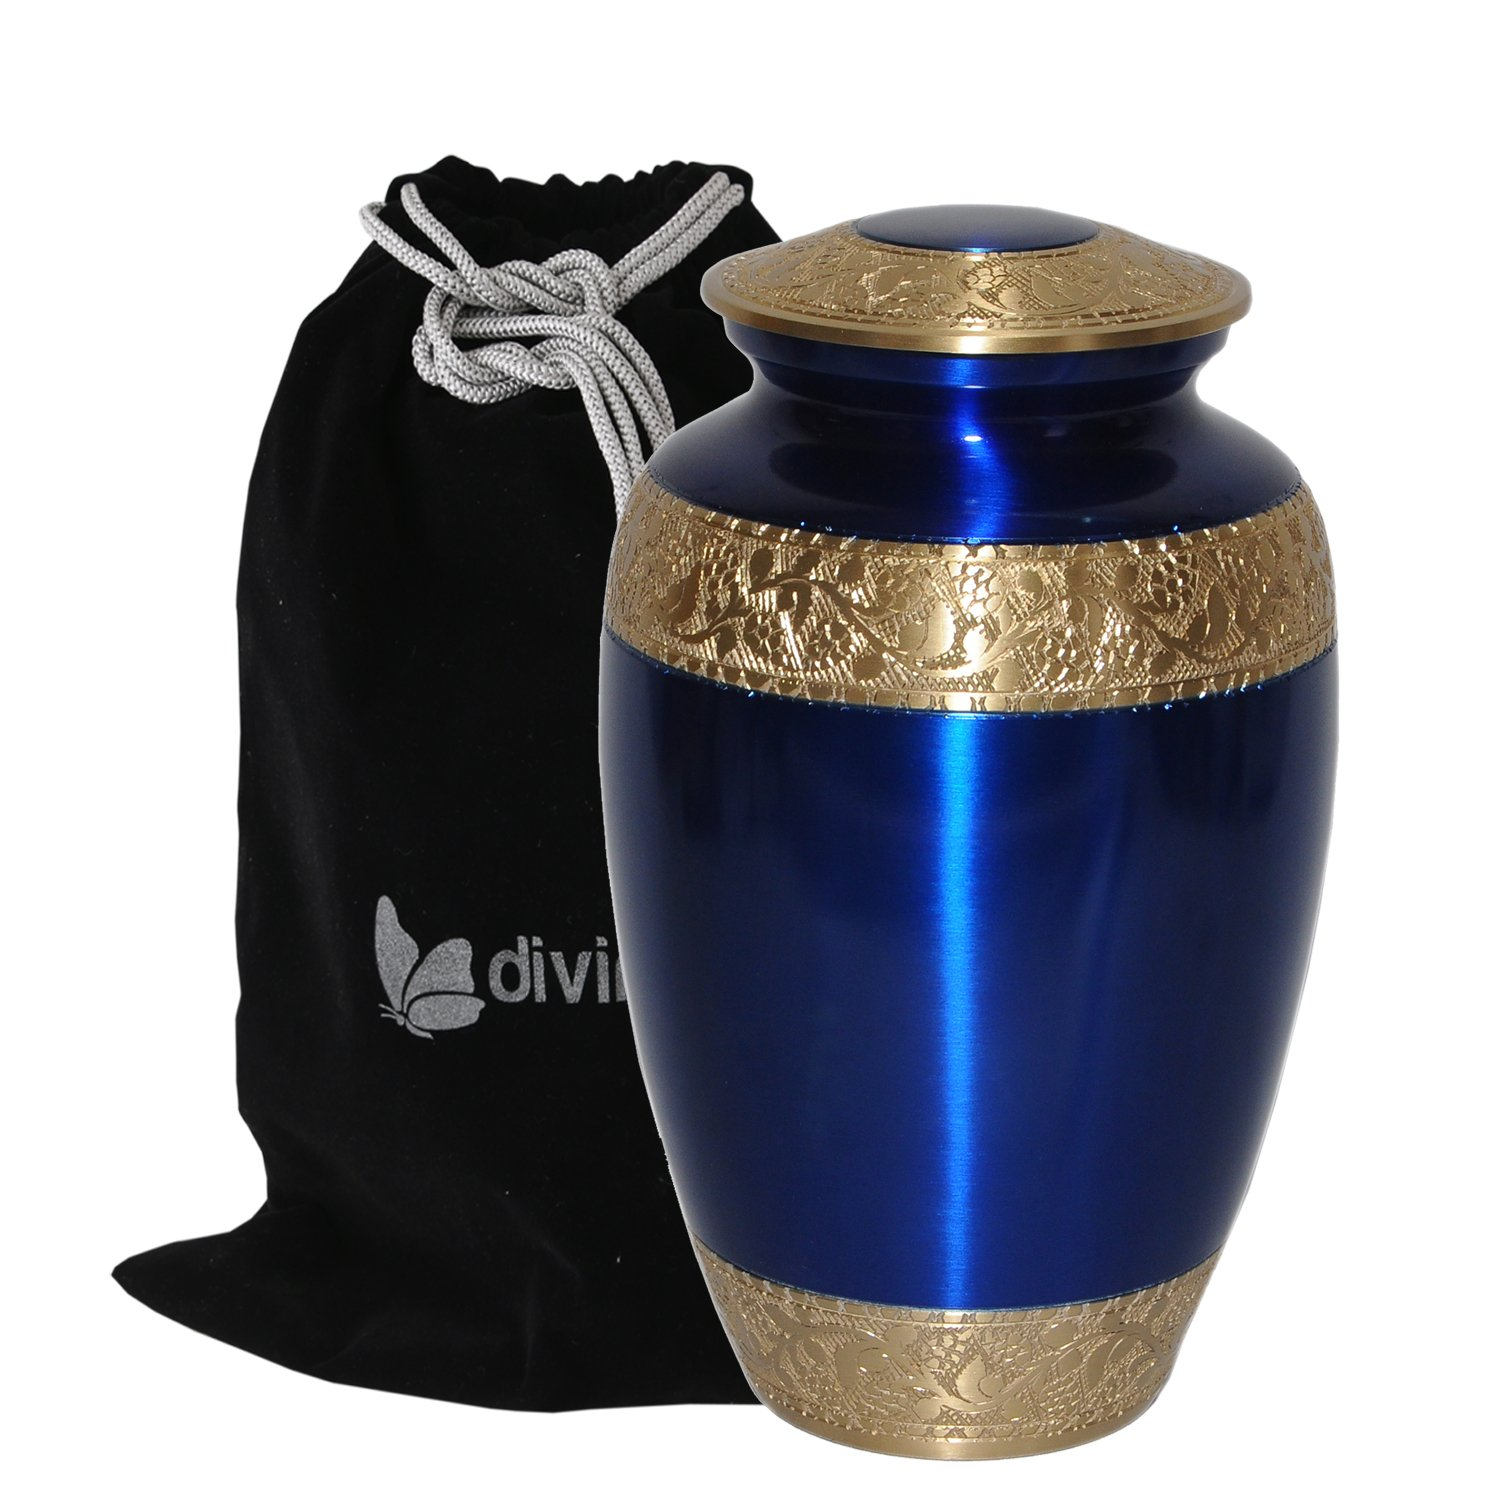 Sapphire Blue Cremation Urn for Human ashes - Adult Funeral Urn Handcrafted - Solid Brass Urn - Affordable Urn for Ashes - Large Urn Deal